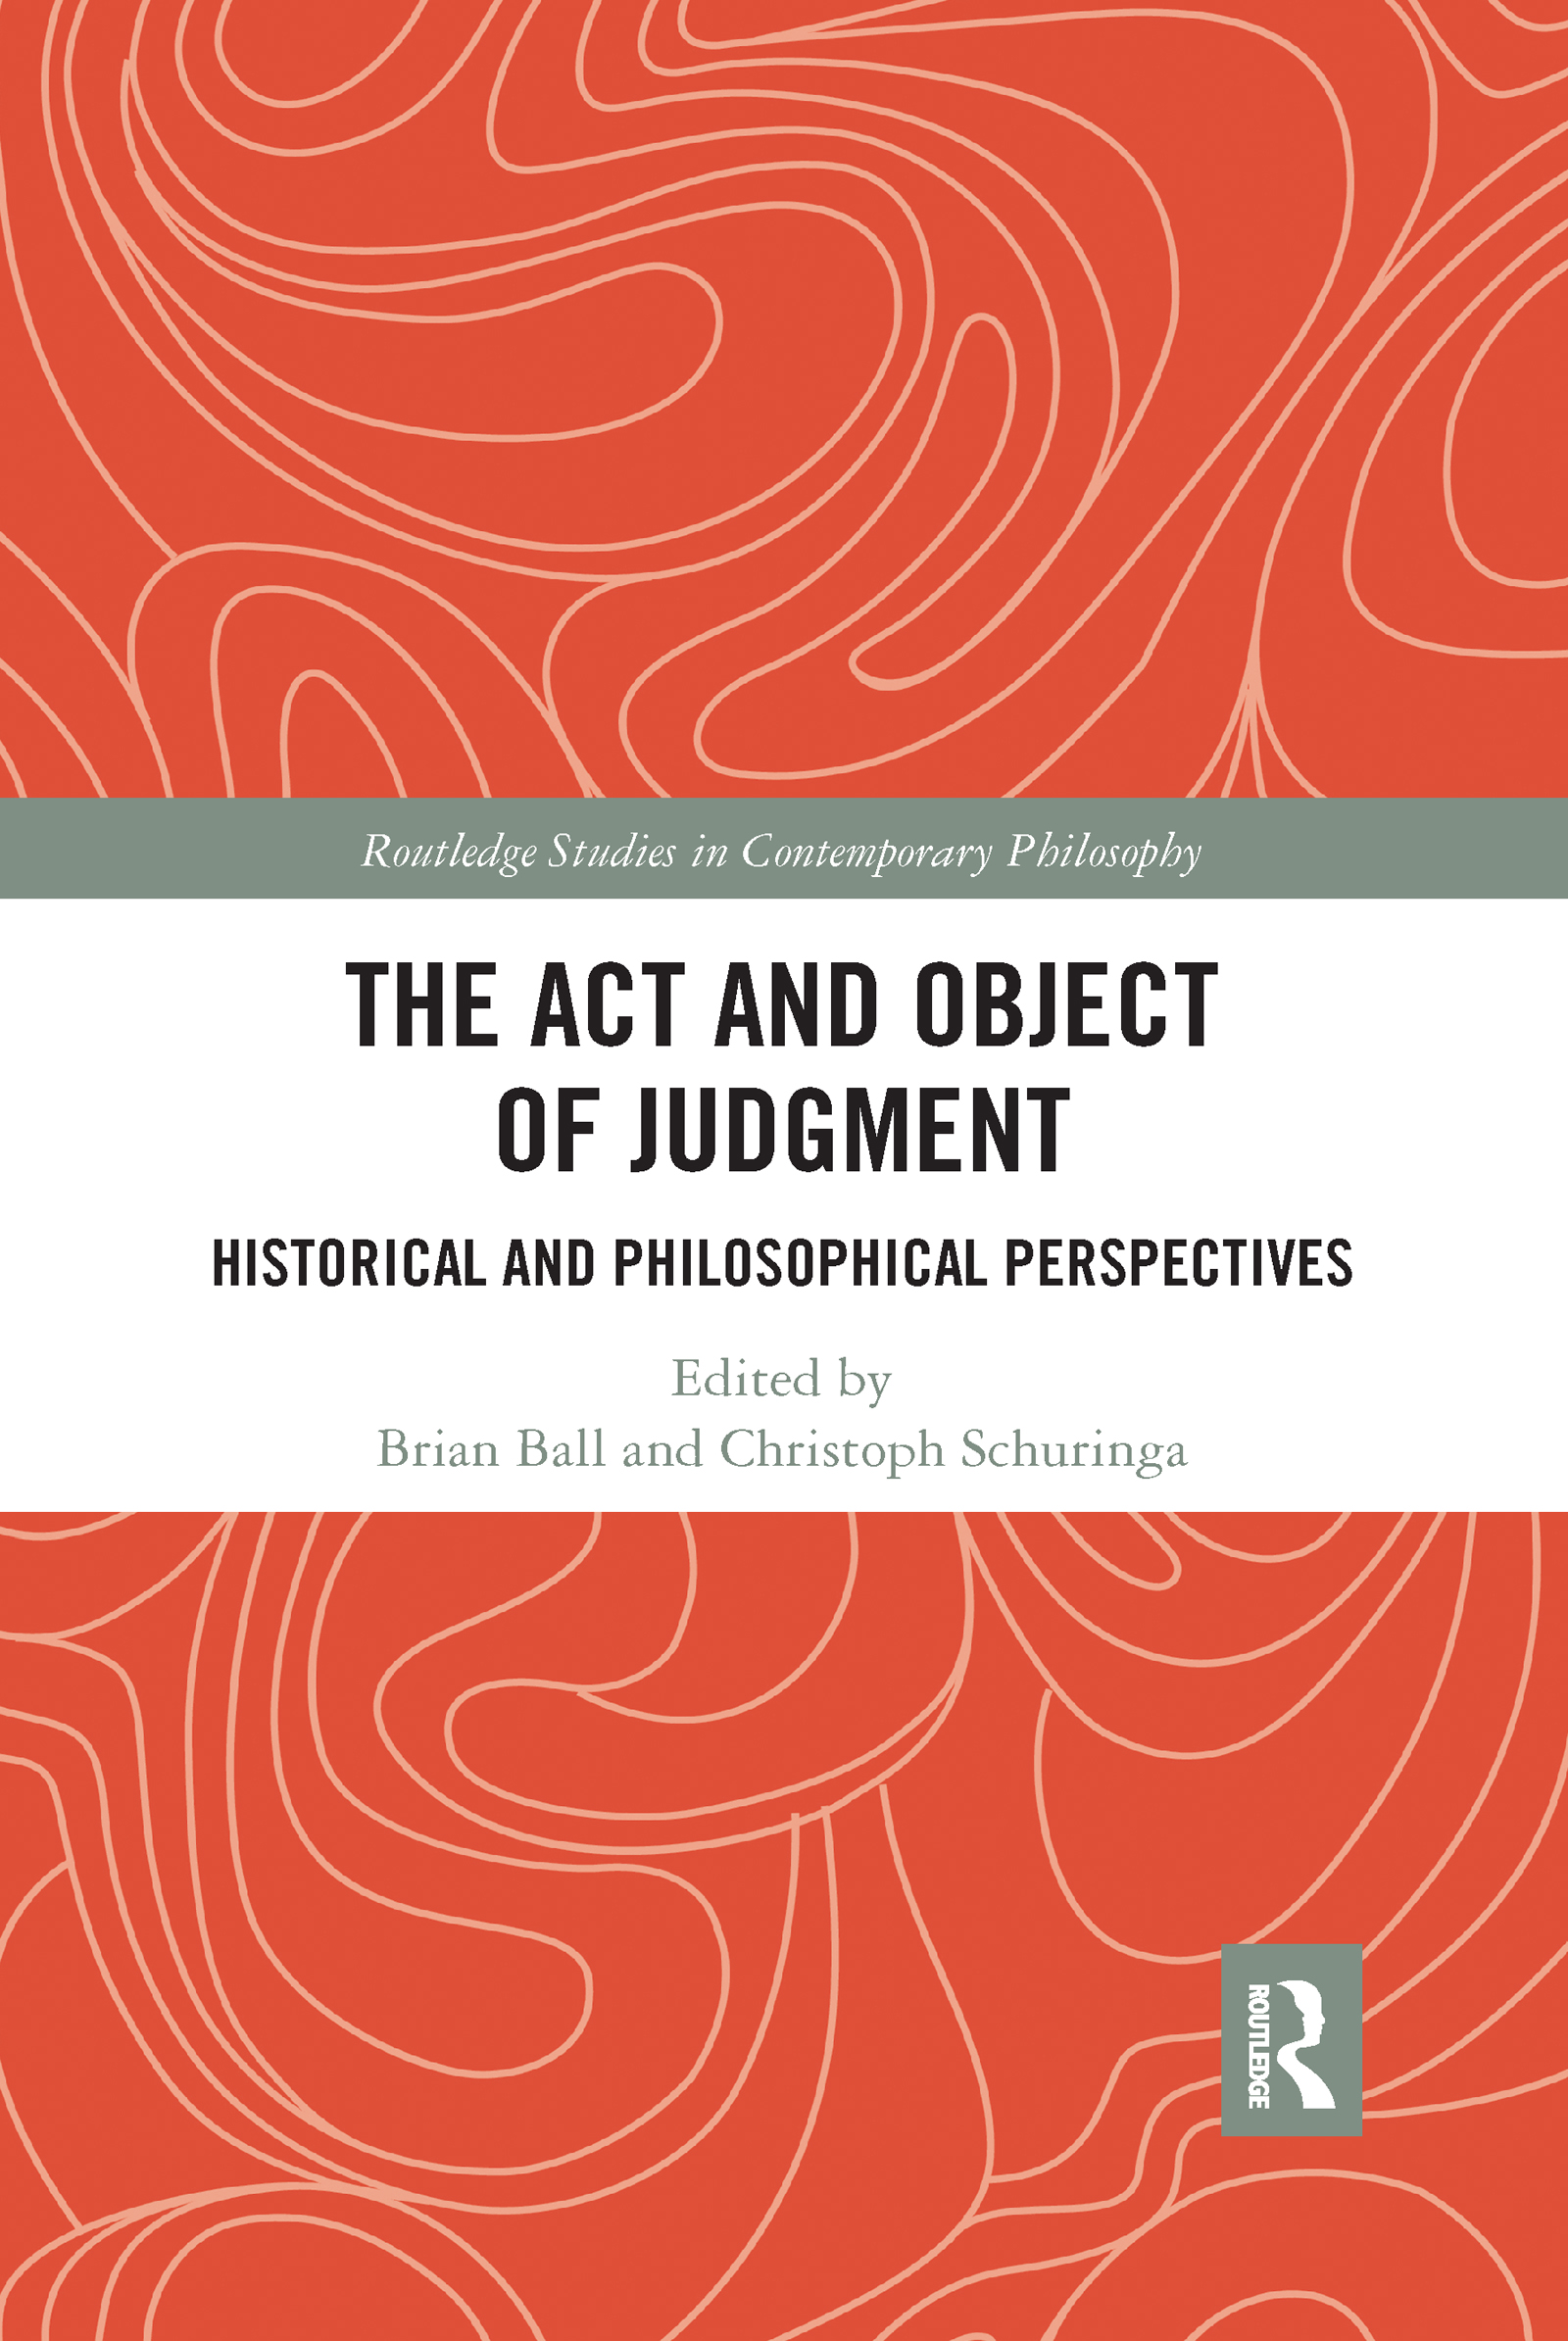 The Act and Object of Judgment